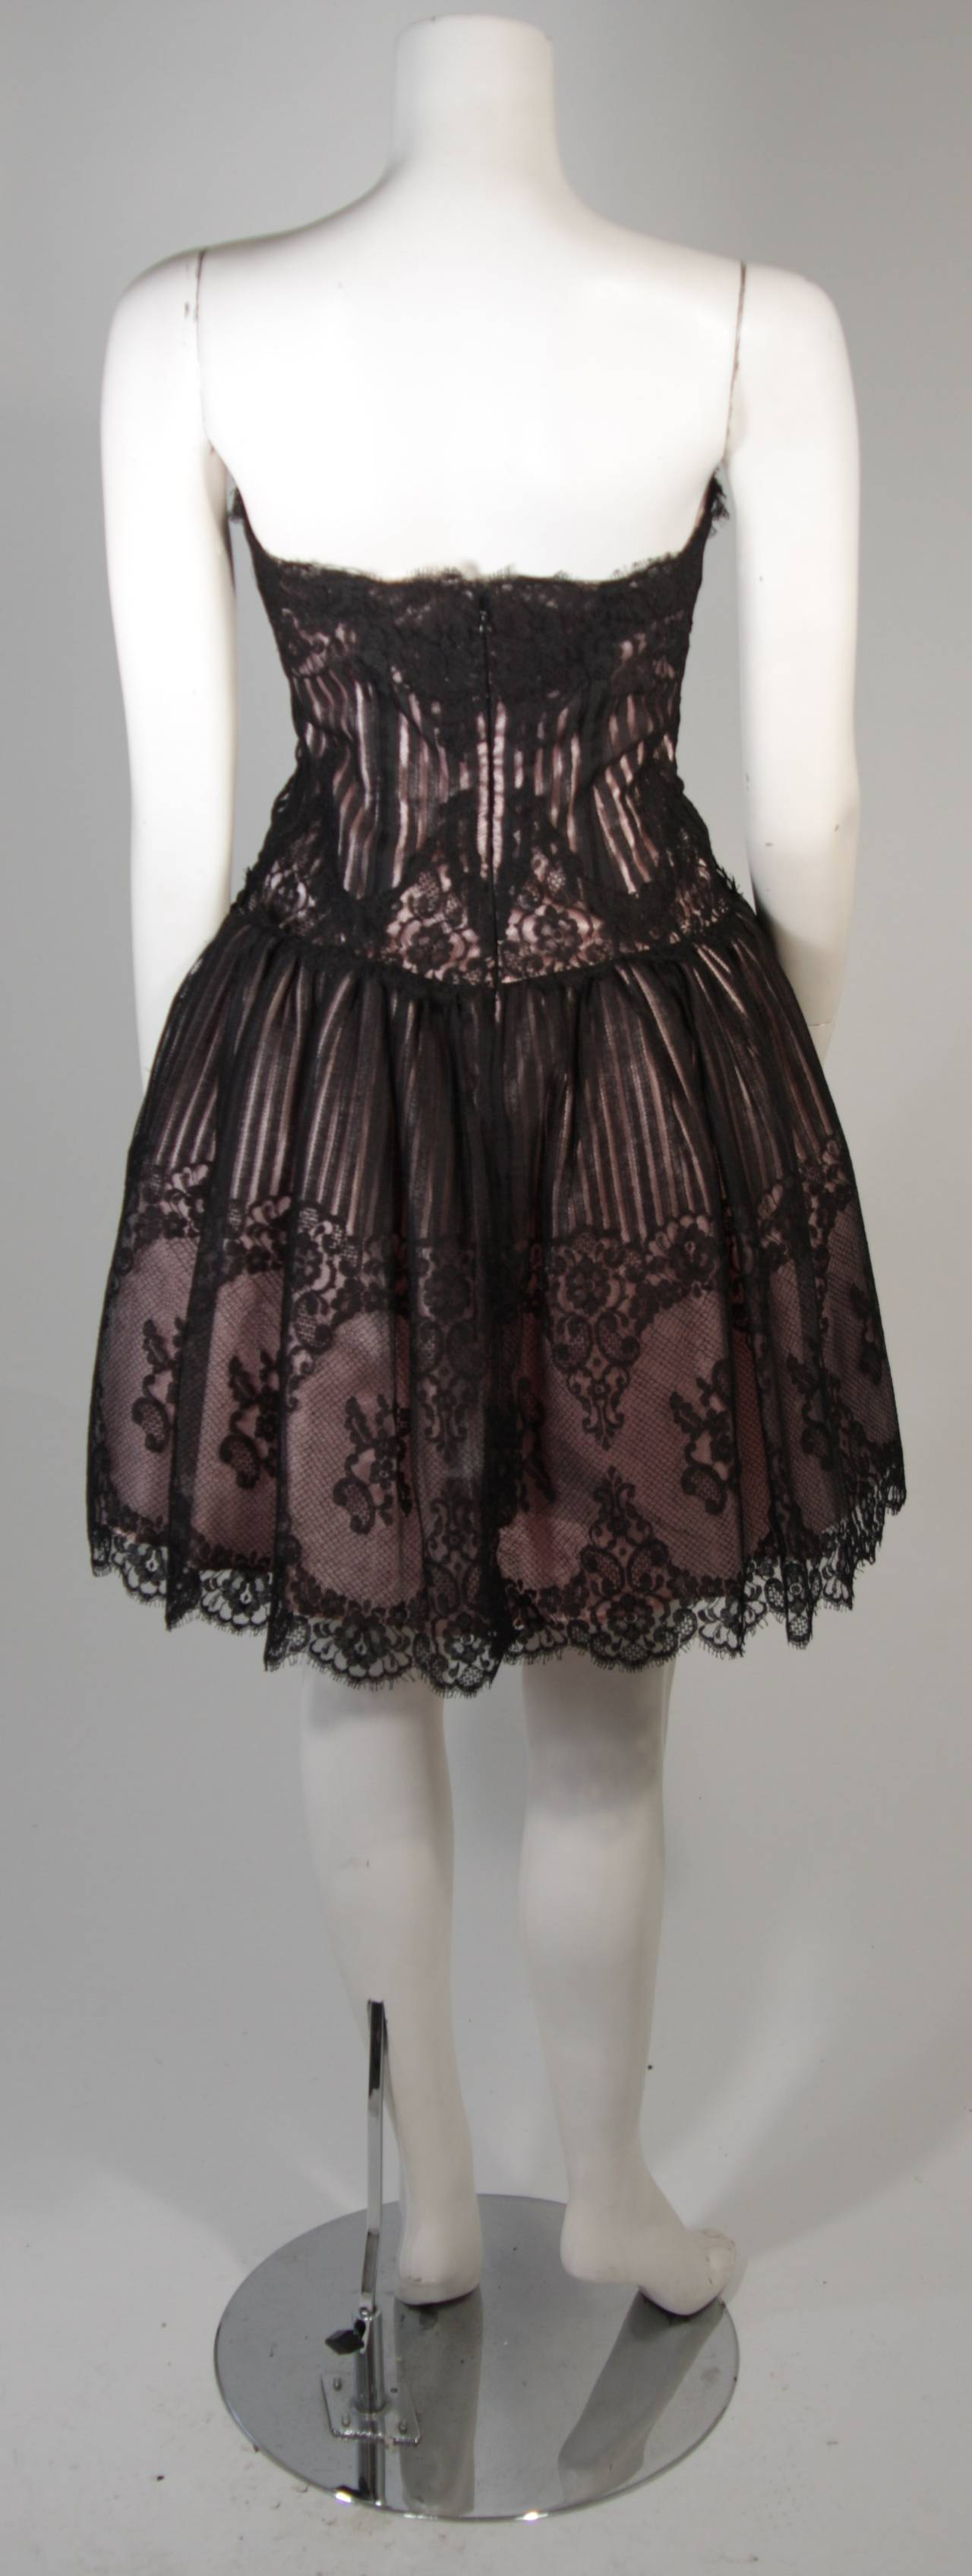 Victor Costa Strapless Black Lace Cocktail Dress with Pink Satin Size 40 For Sale 2